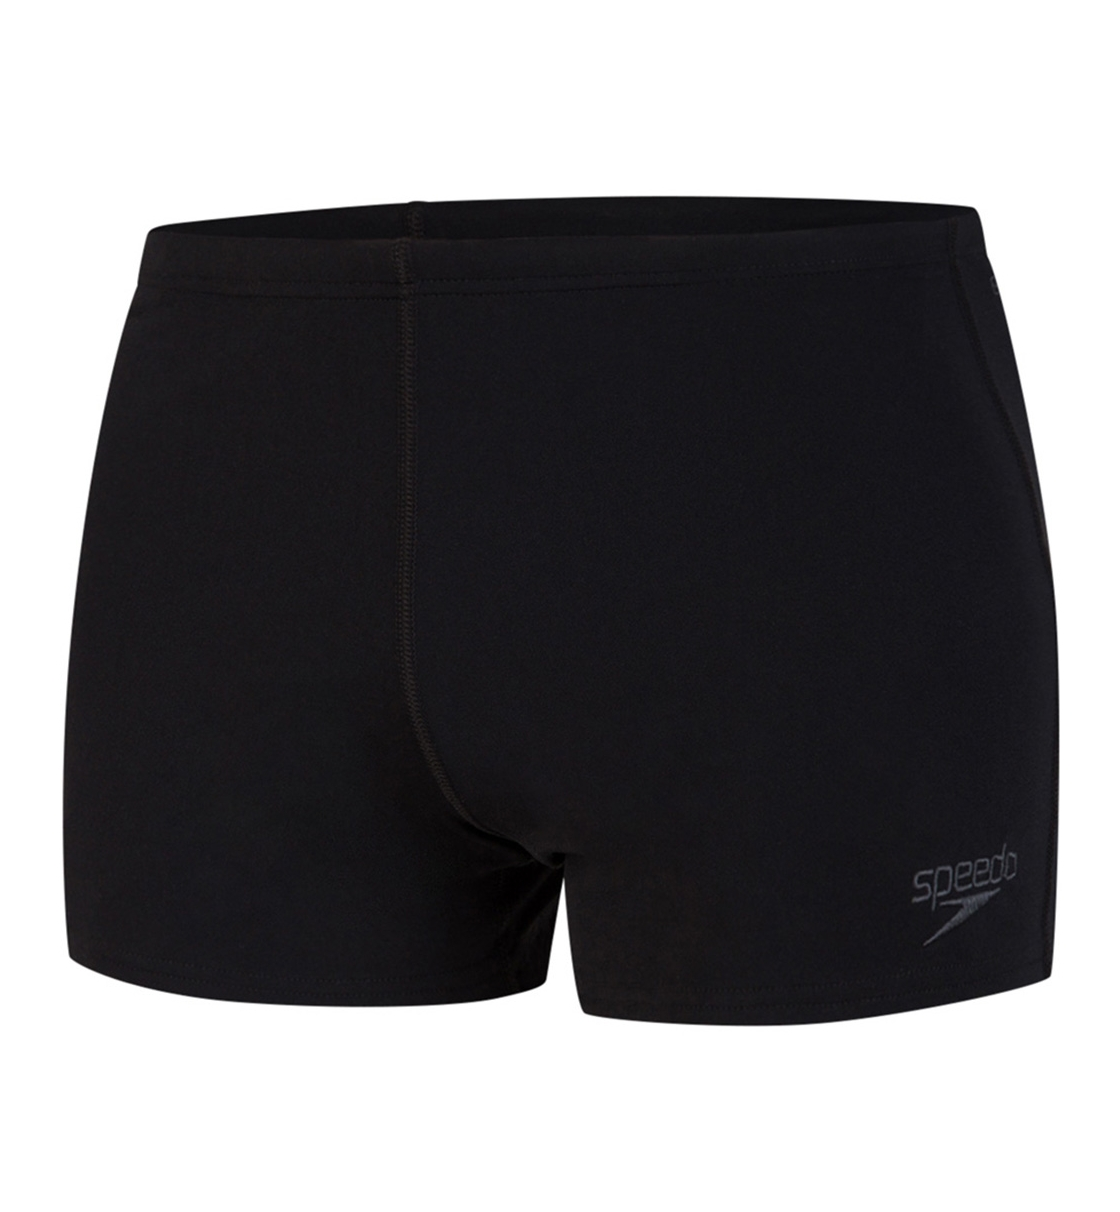 Speedo Ανδρικό Μαγιό Boxer Fw20 Essentials Endurance + Aquashort 12507-0001M